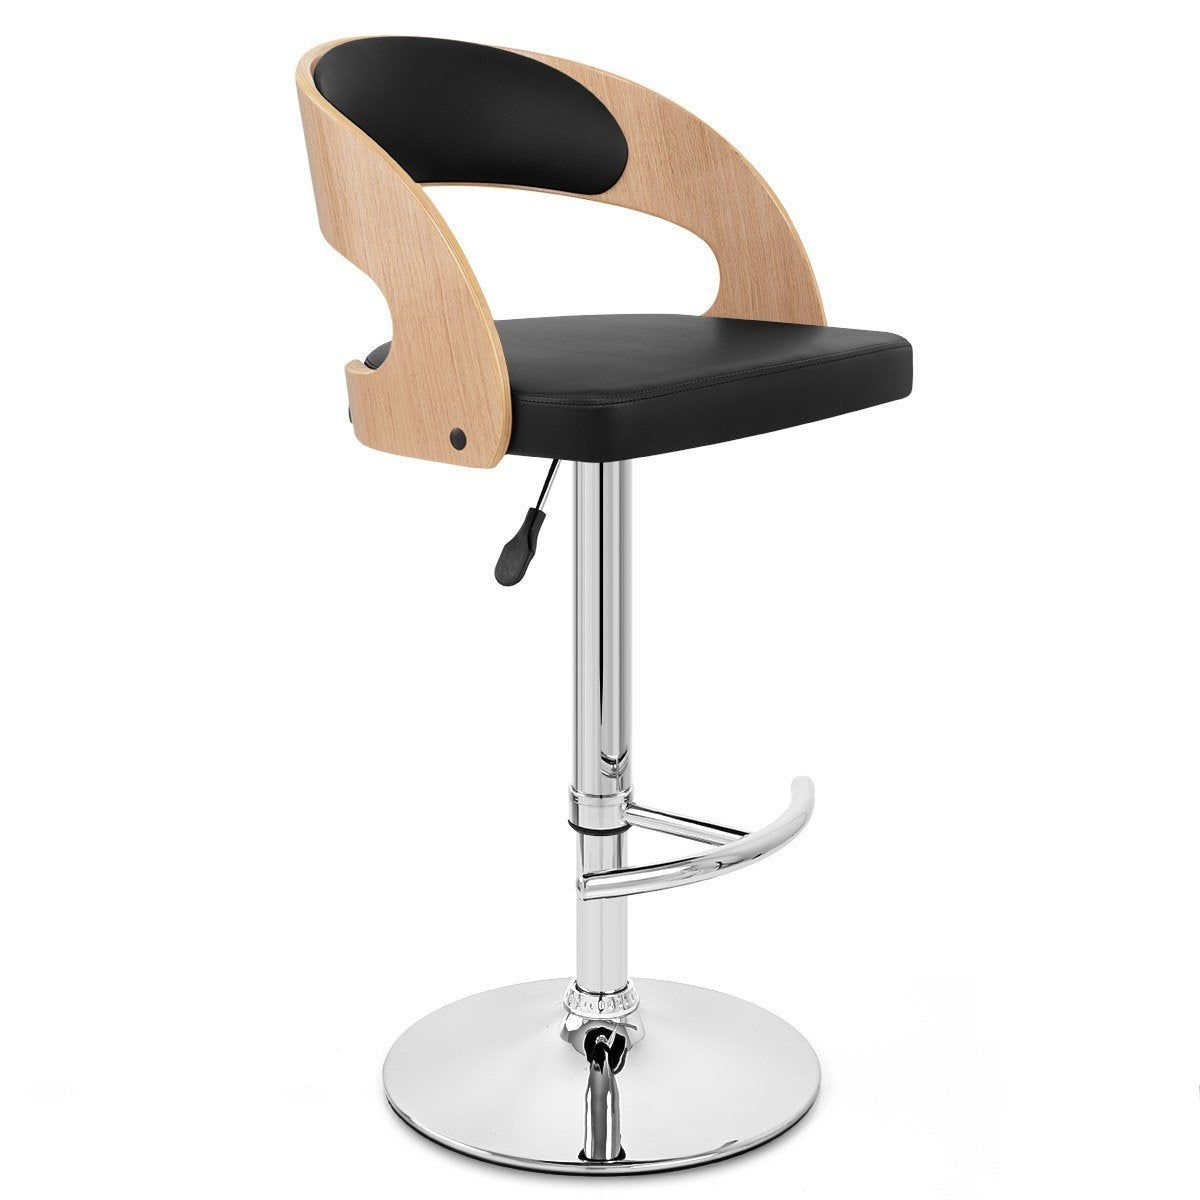 Tabouret De Bar Design Simili Cuir Noir Eve Mdt Tabouret De Bar Design Tabourets De Cuisine Du Bar